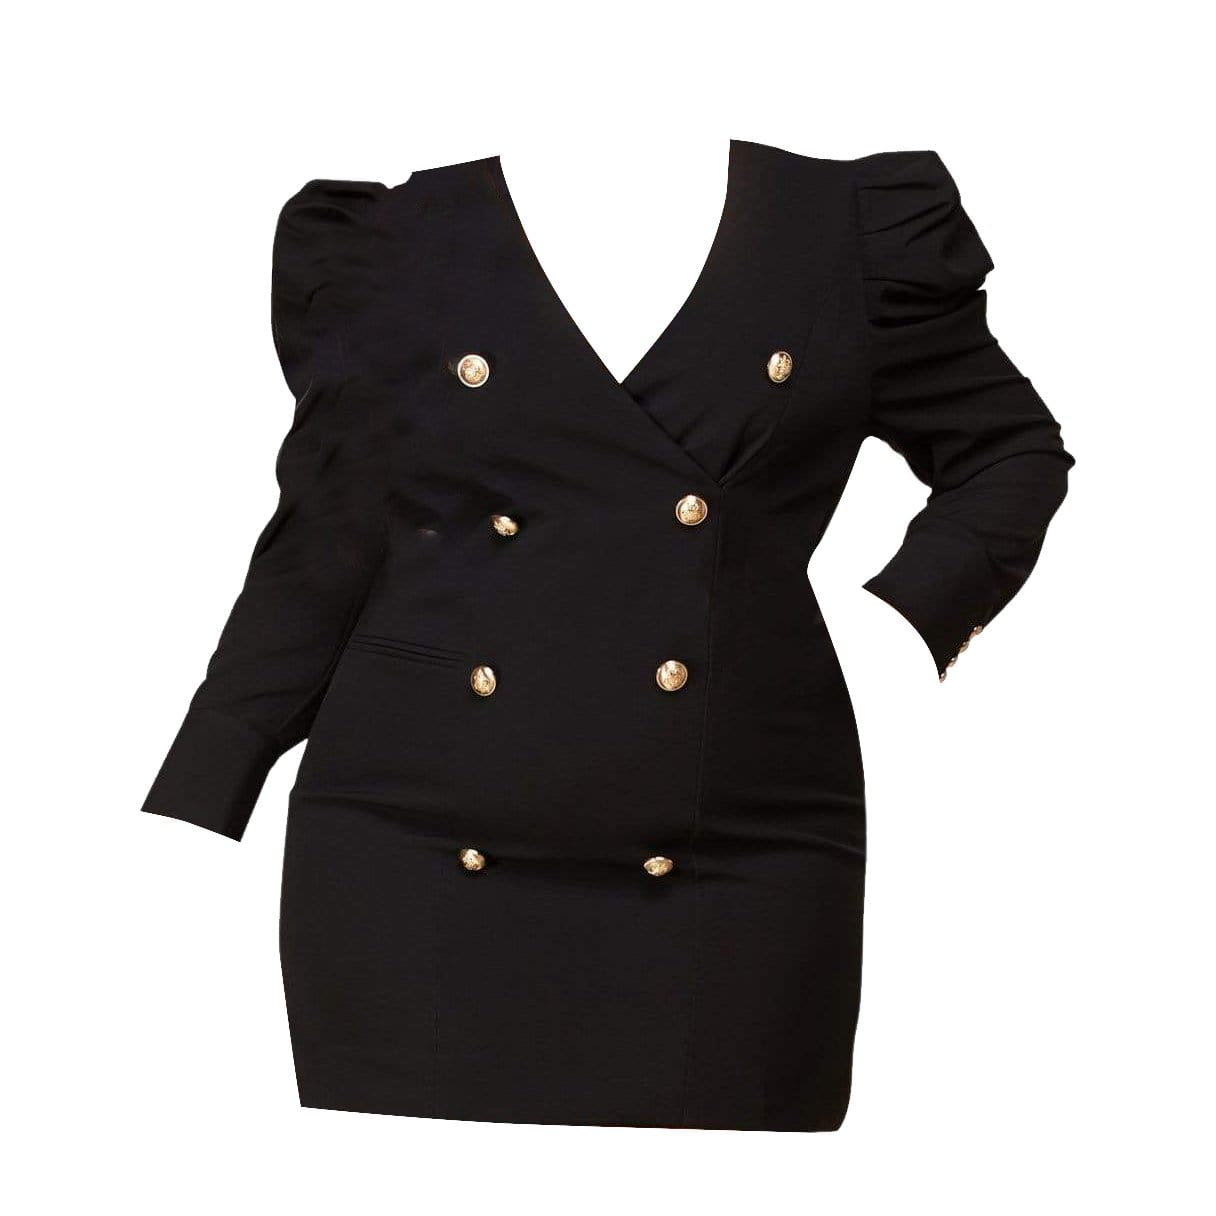 Blazer Mini Dress-Black - Posh Shoppe